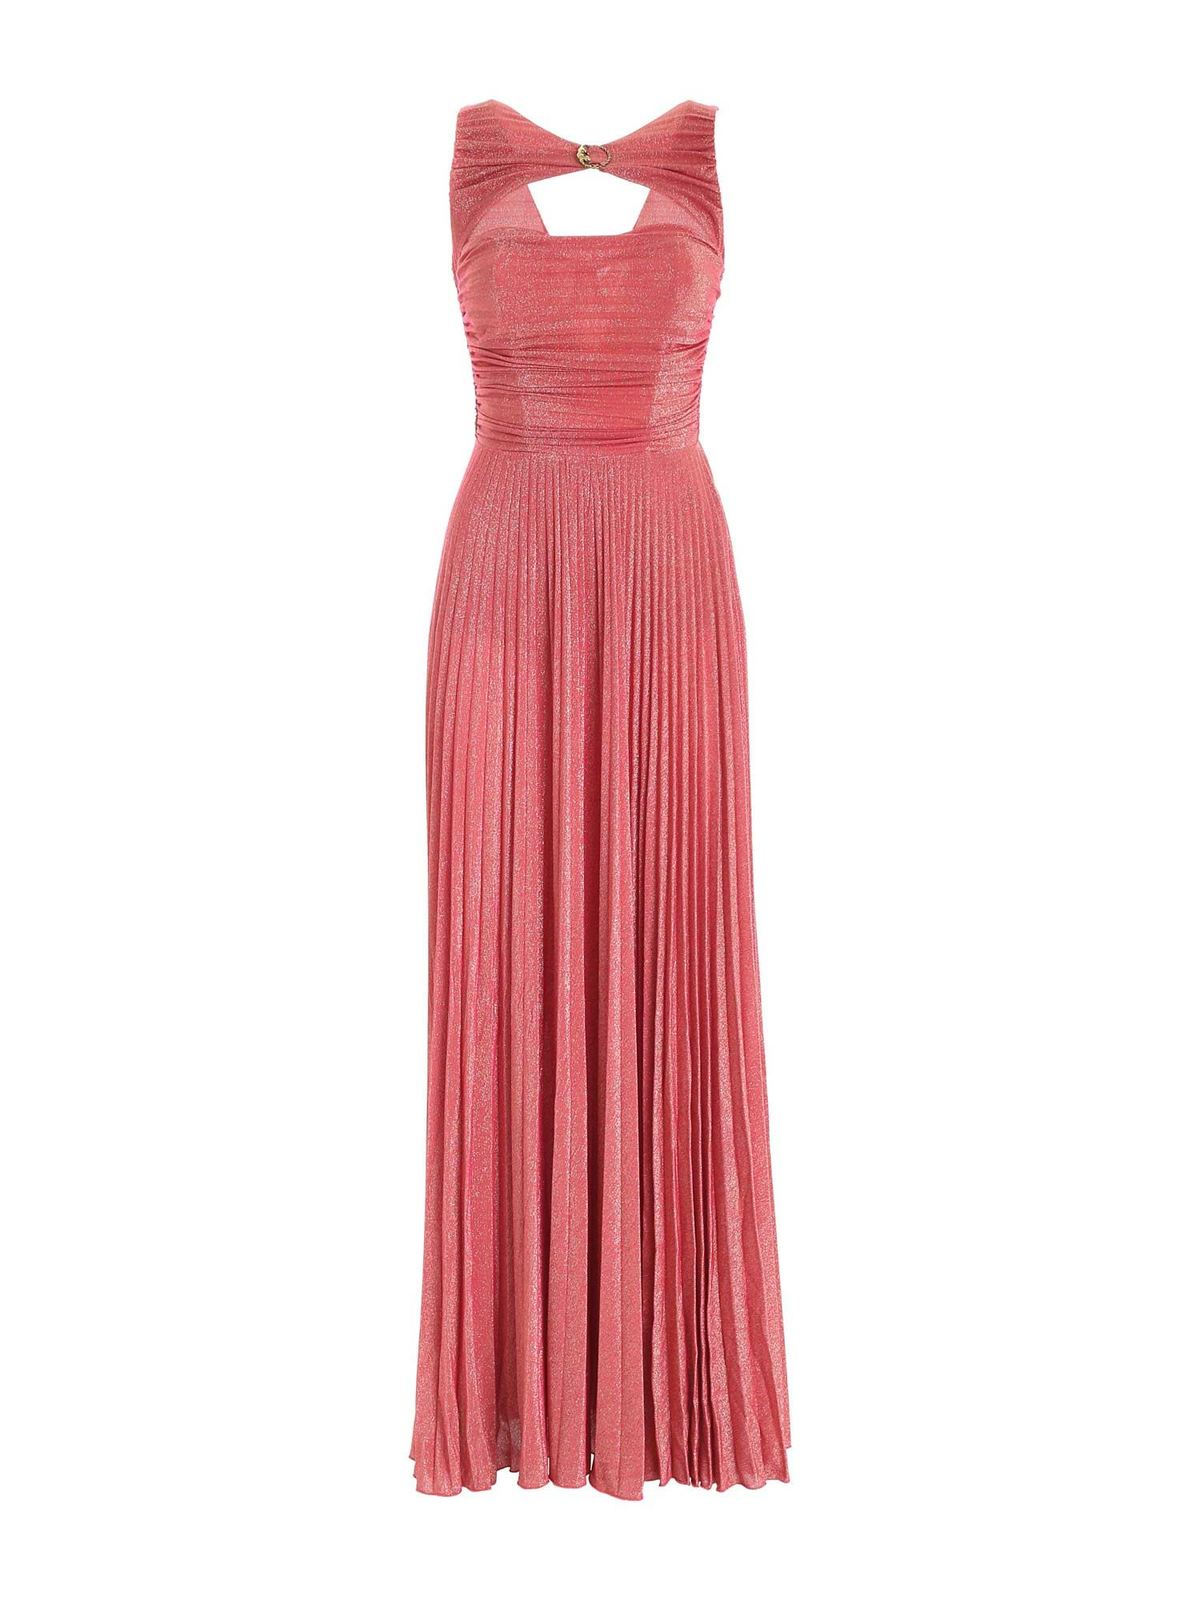 Elisabetta Franchi PLEATED DRESS IN LAME CORAL PINK